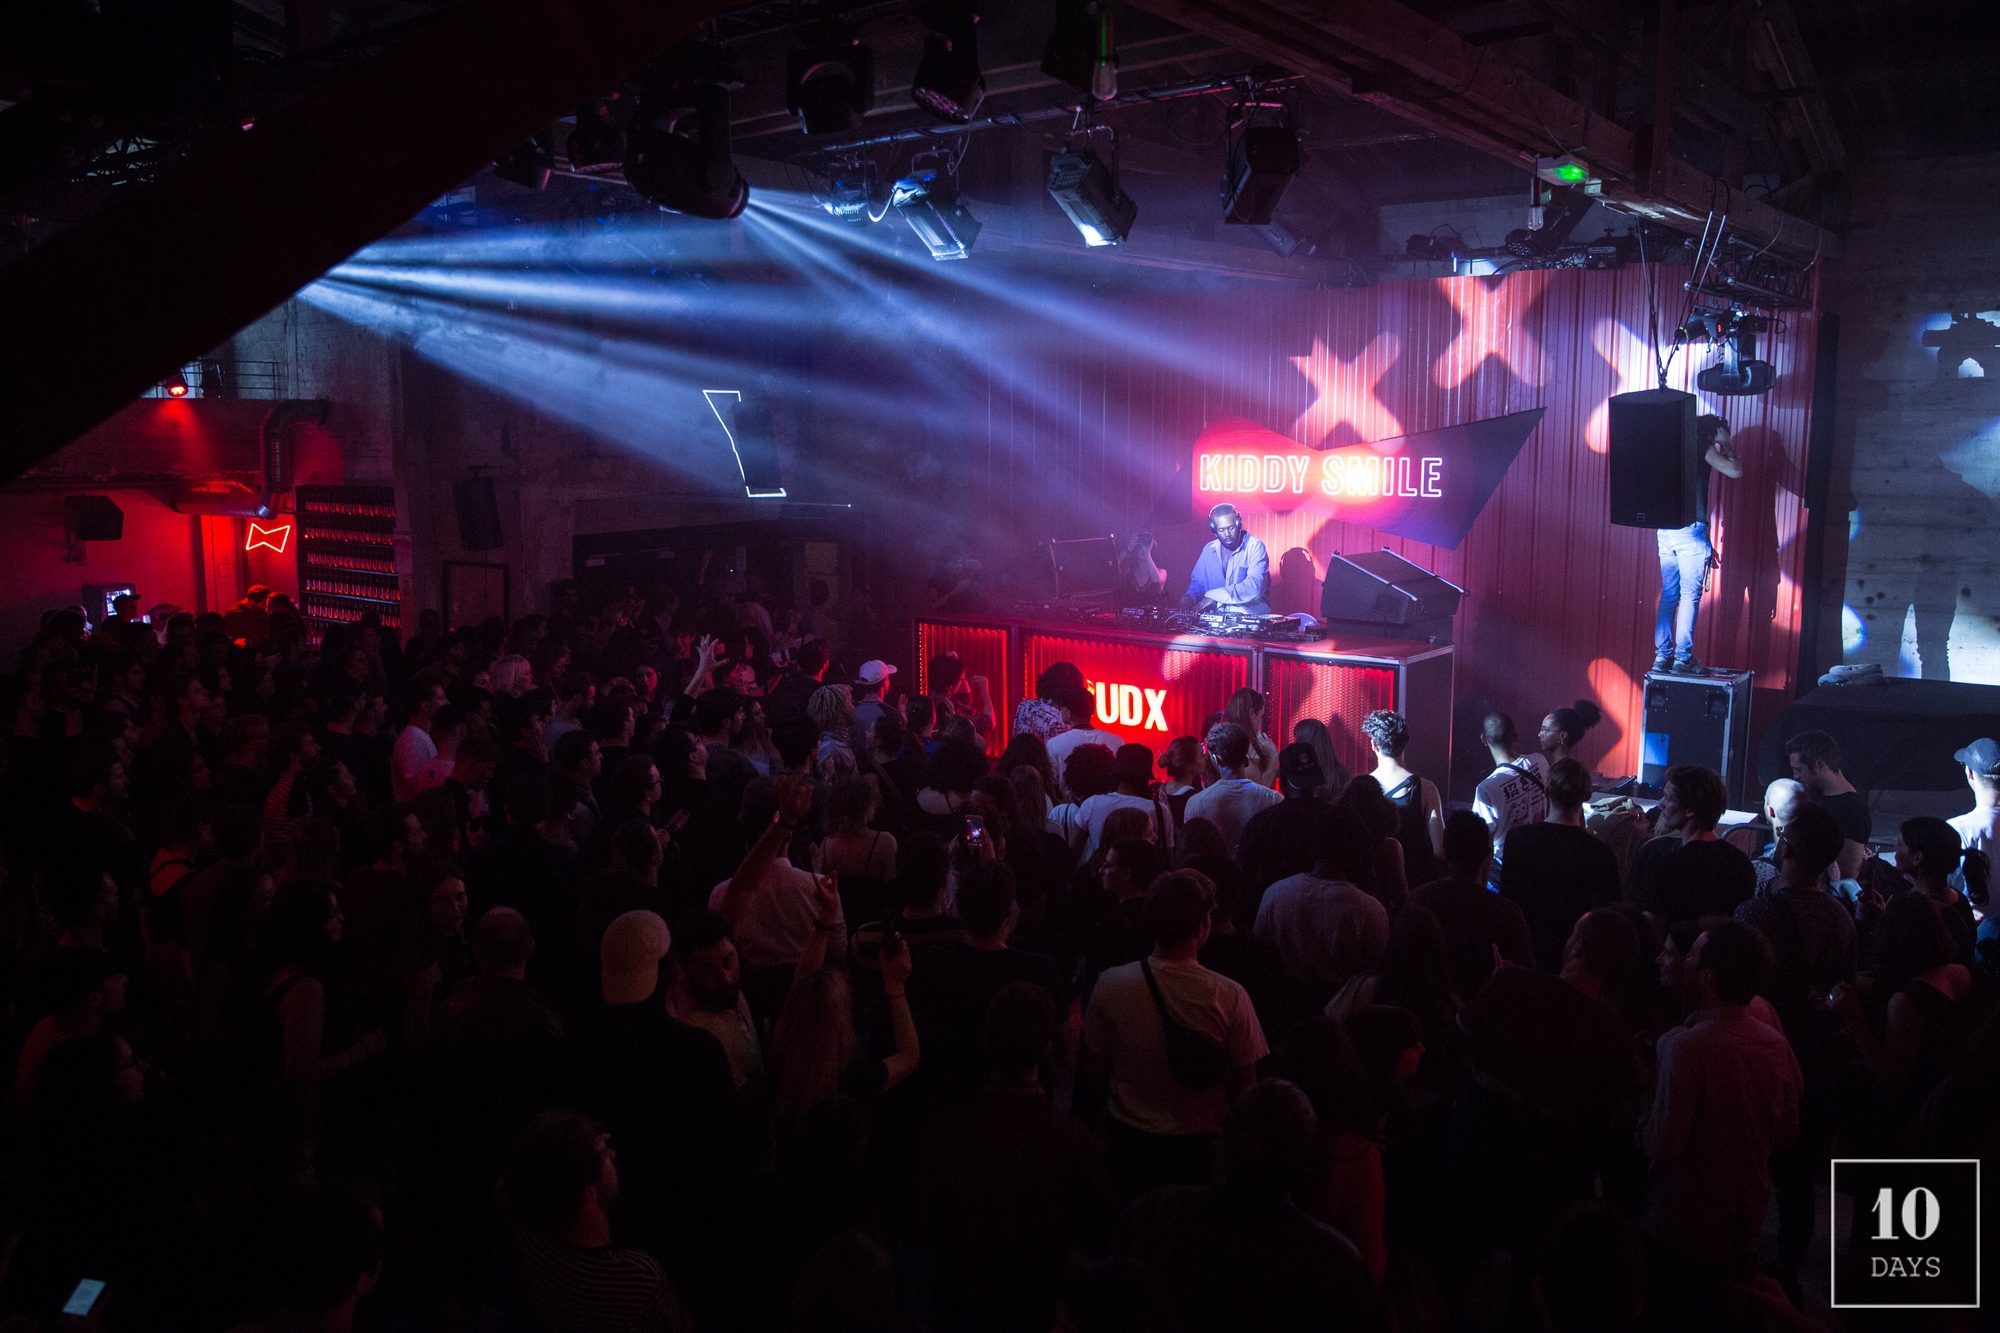 BUDX PARIS DAY 2 Feat Kiddy Smile, Maceo Plex and More